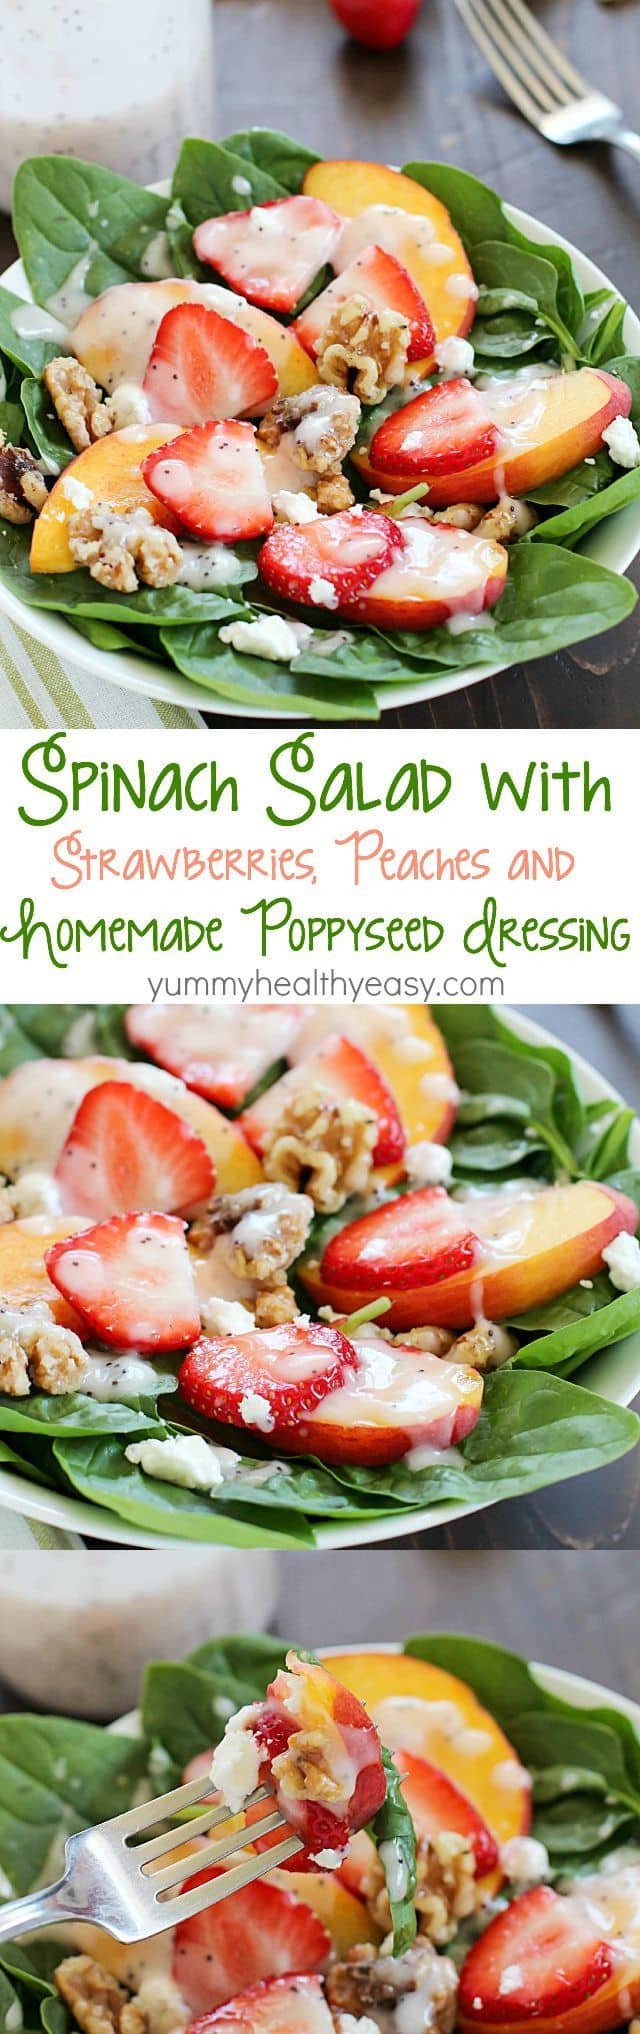 Spinach Salad with strawberries, peaches, candied walnuts, goat cheese ...